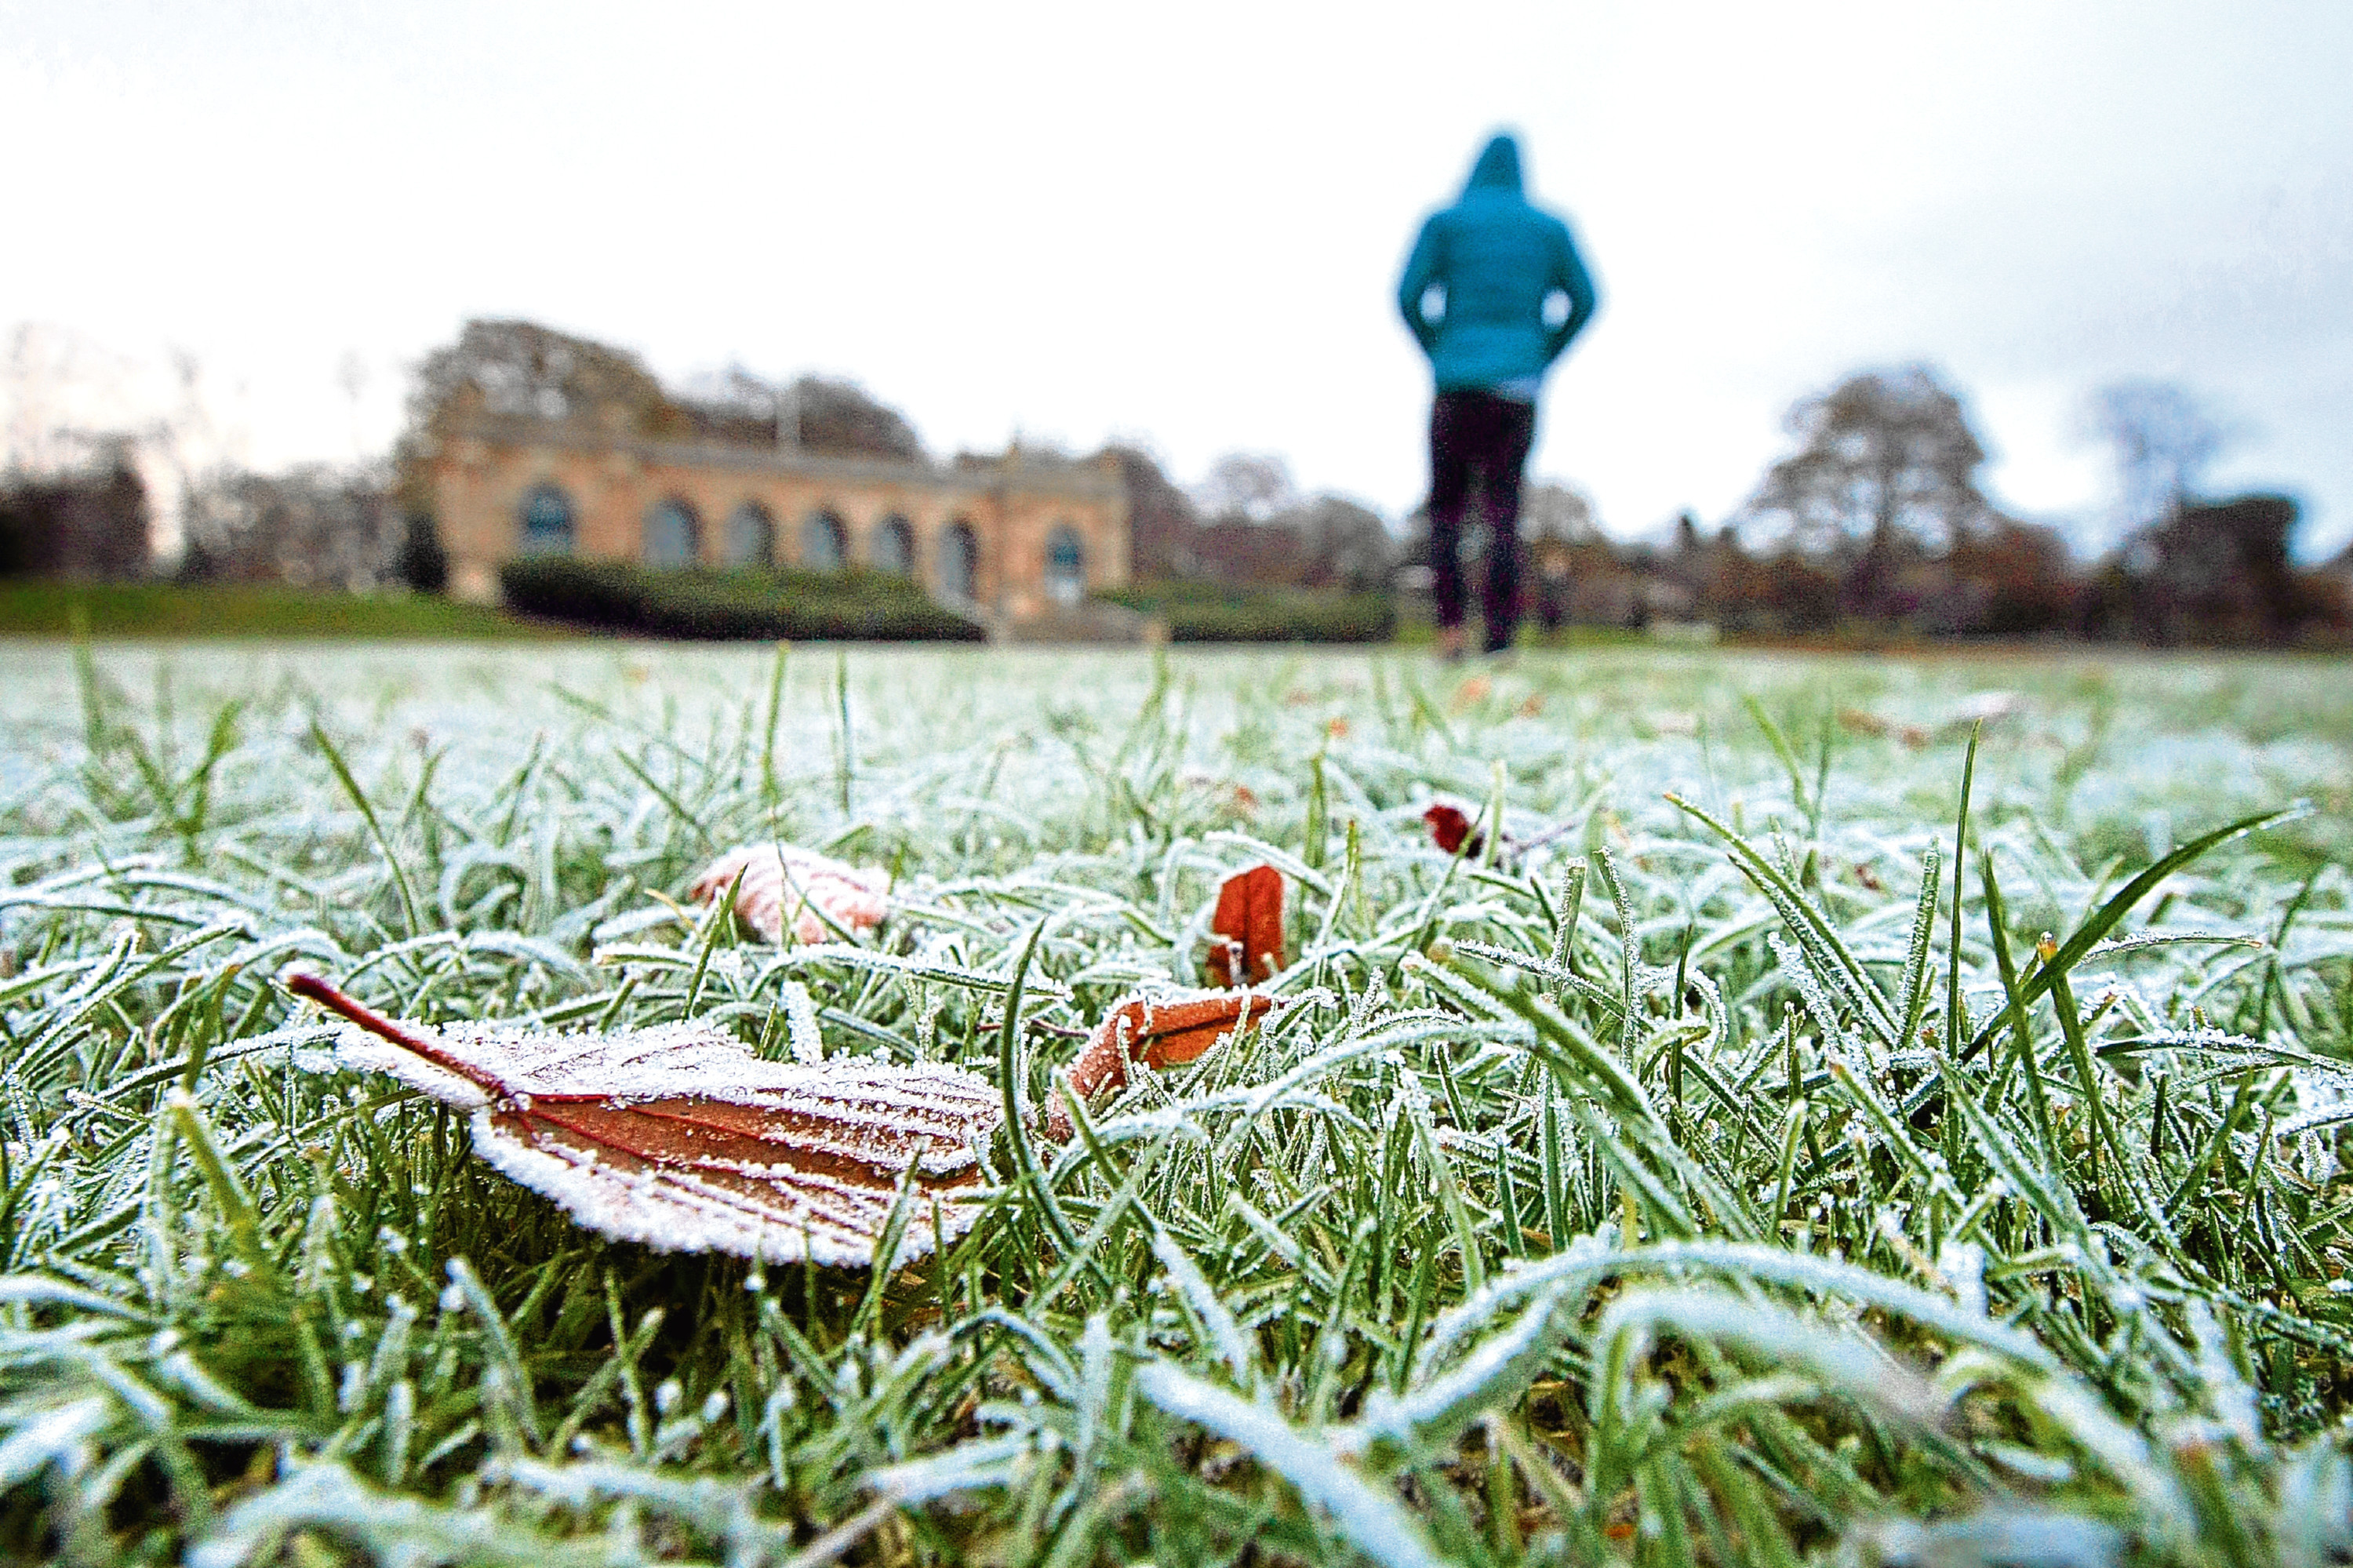 January was one of the driest since records began according to forecasters.